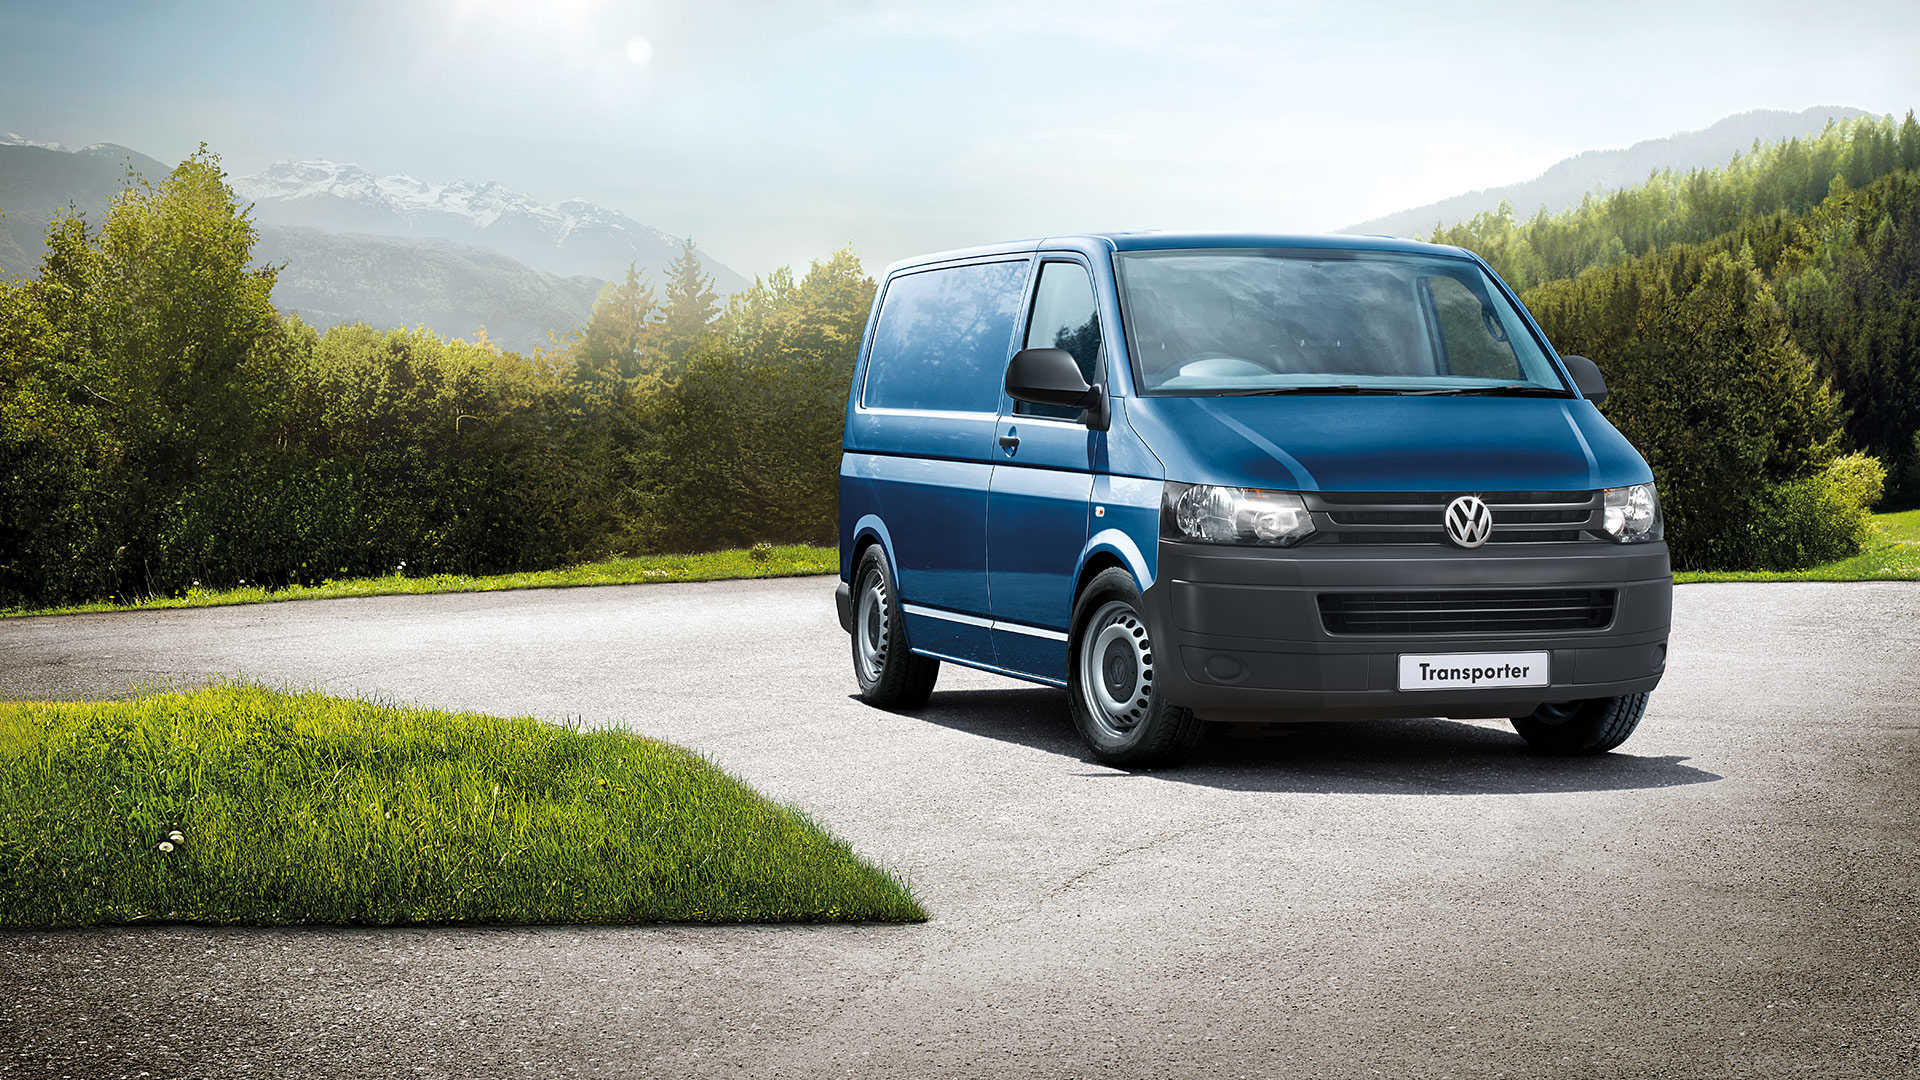 New Volkswagen Transporter Offers | Lookers Volkswagen Vans